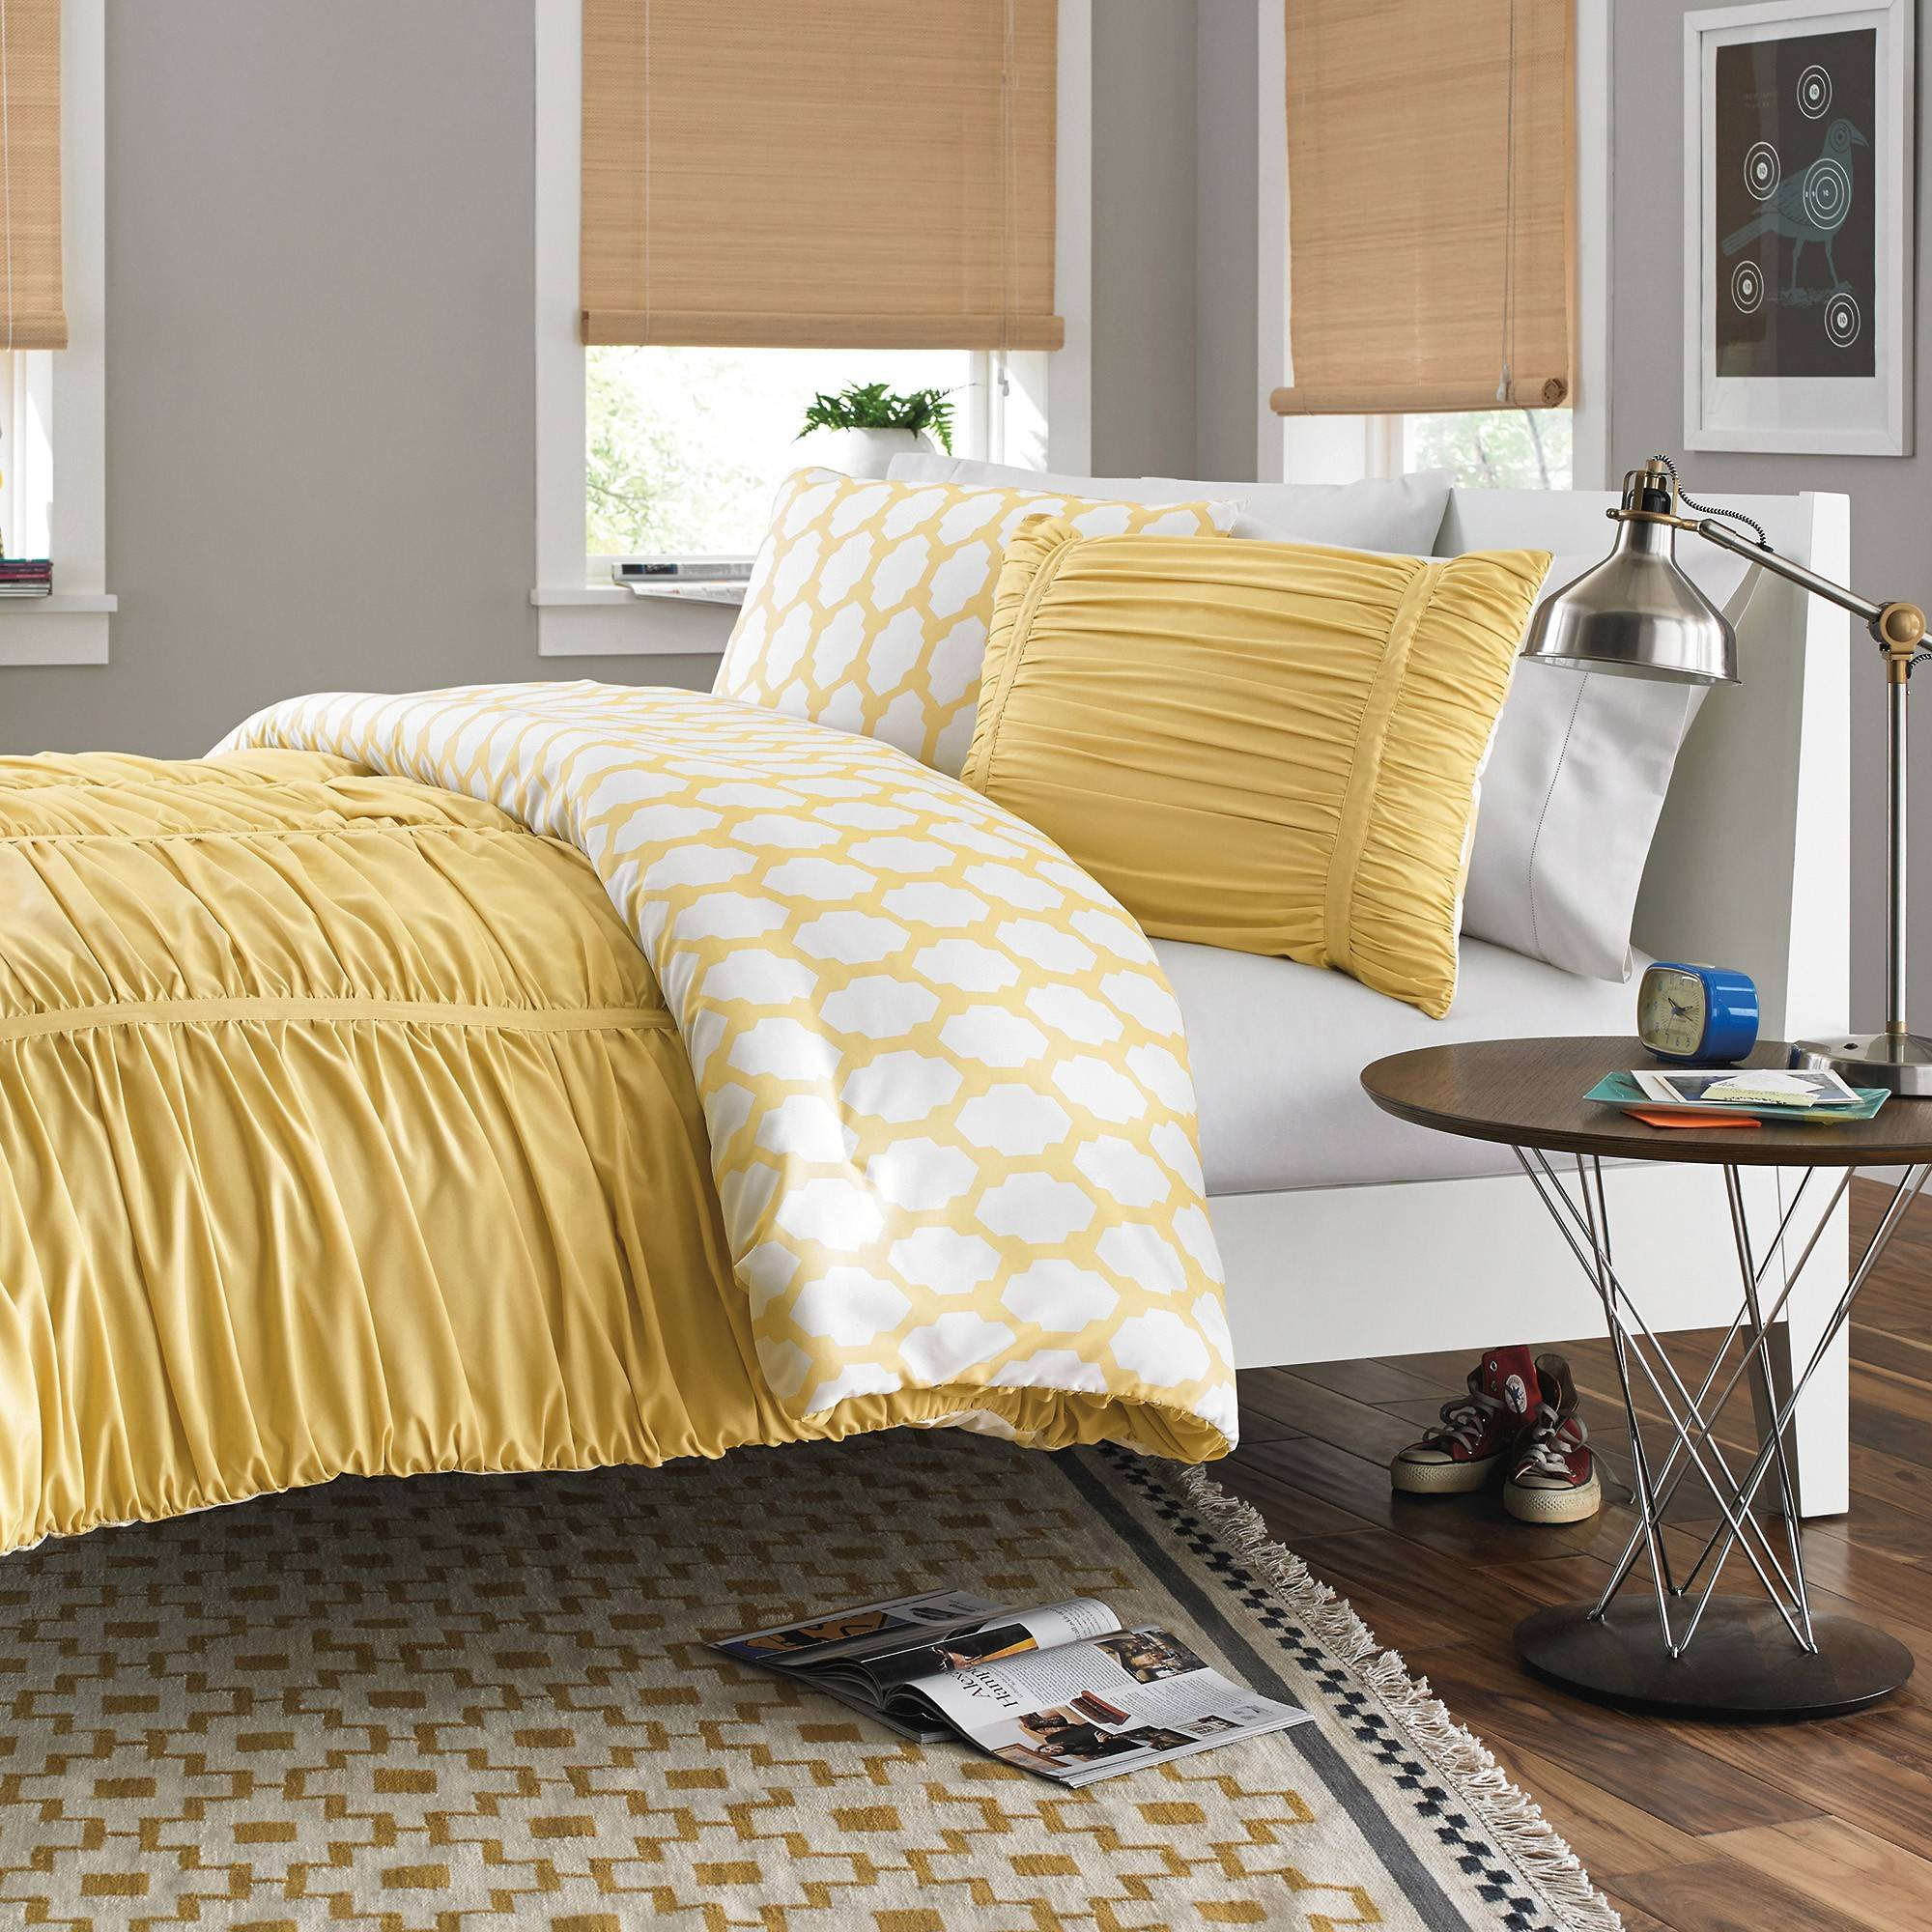 Bedding is one of the easiest ways to let teens express their style, and a reversible comforter such as the Reagan Reversible Comforter Set in Pale Banana gives them an extra option for changing the room's look.